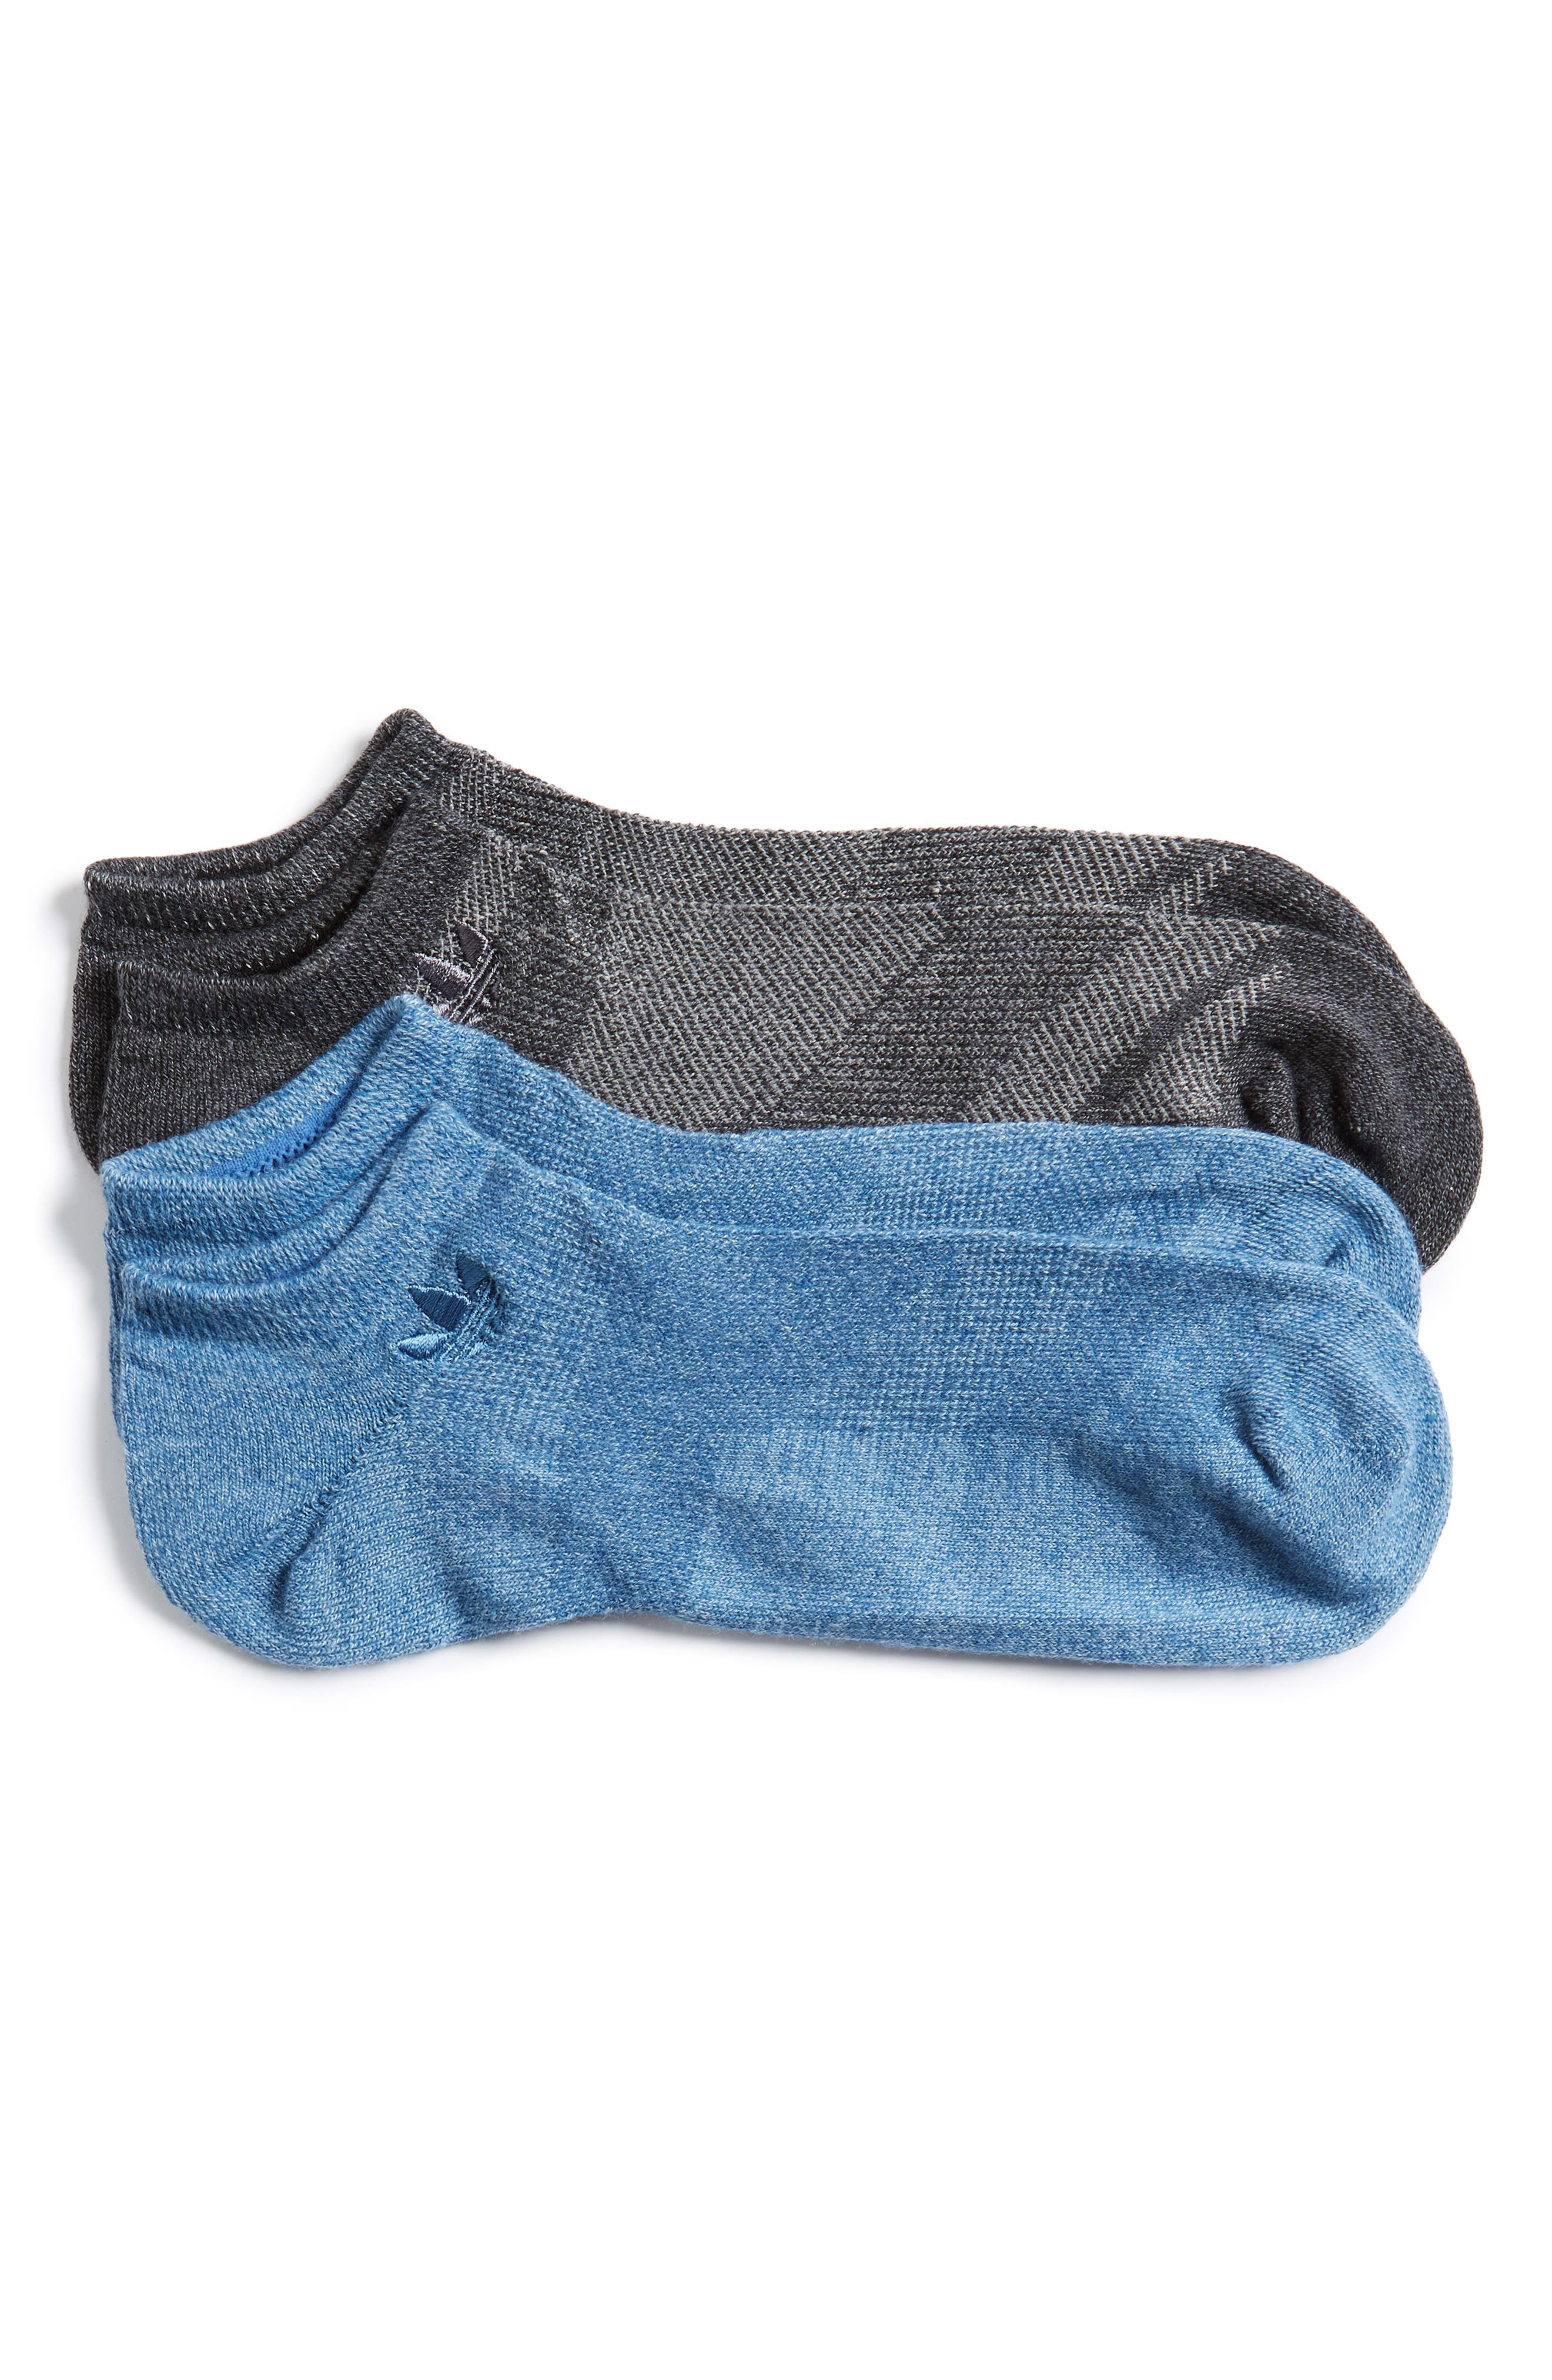 Prime Mesh 2-Pack No-Show Socks,                         Main,                         color, Tactile Blue/ Black/ Onyx Marl